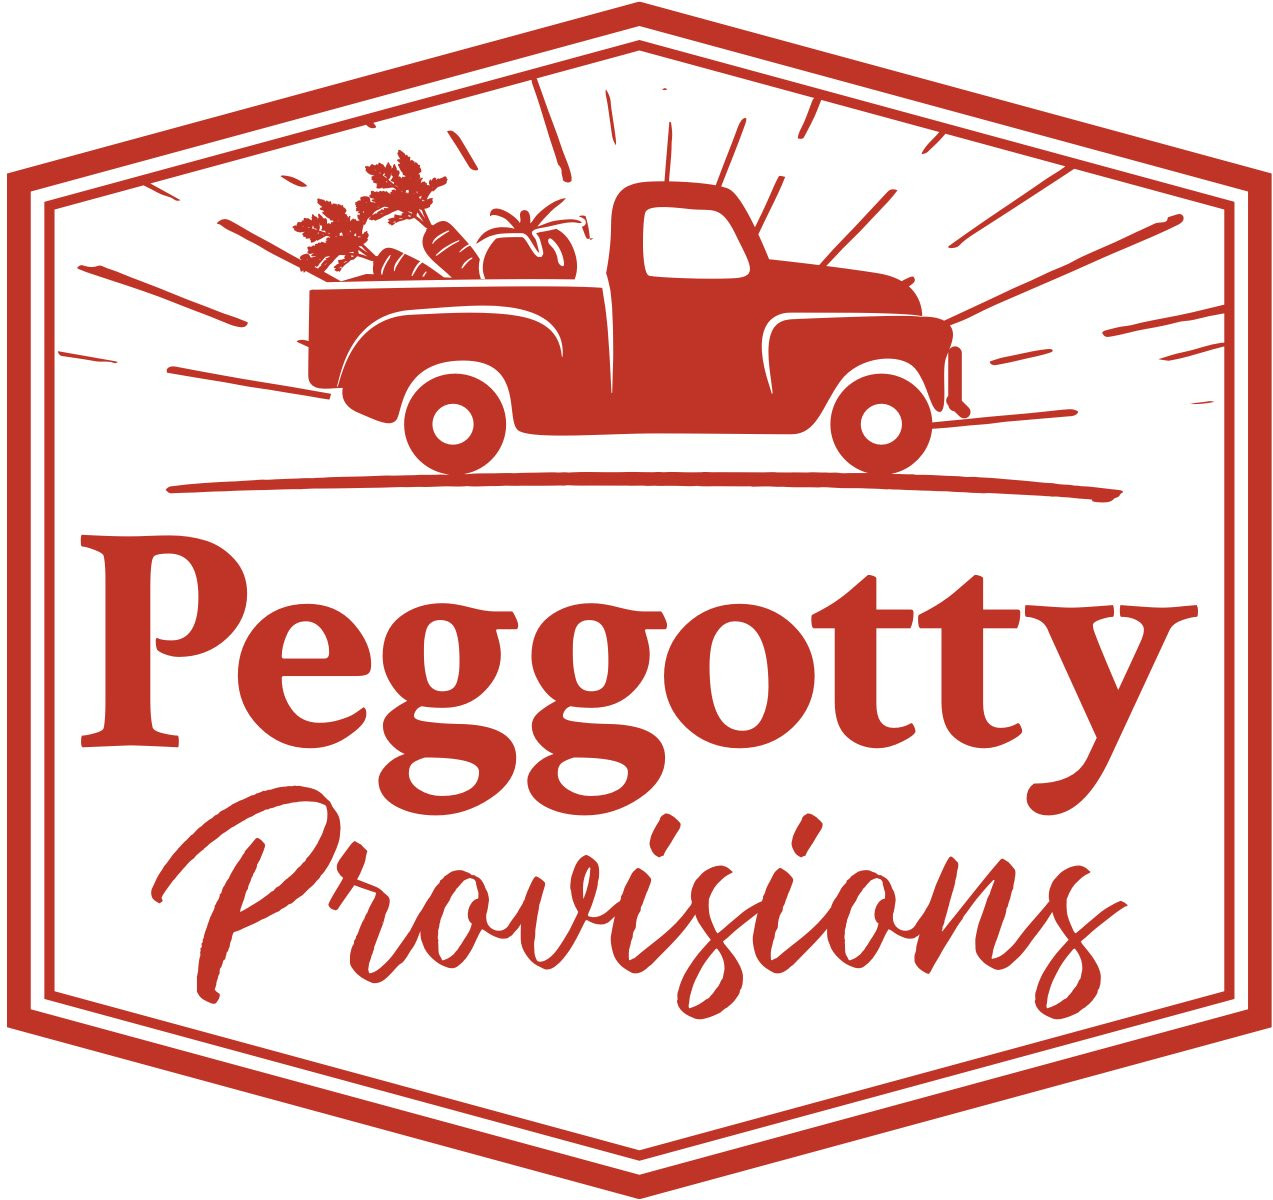 Peggotty Provisions food delivery